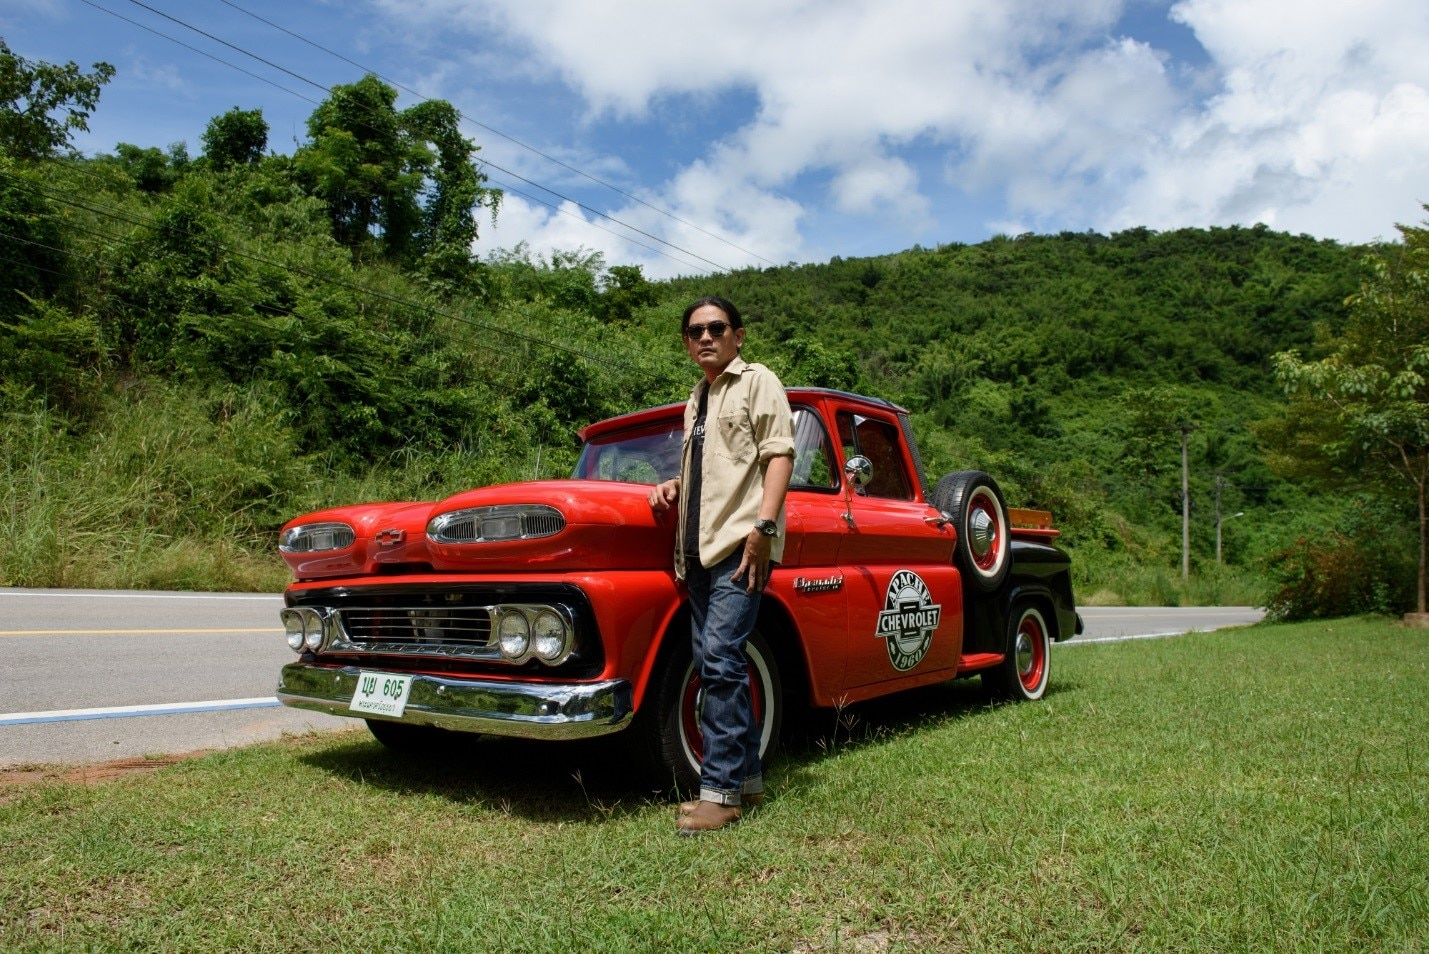 Southeast Asia Truck Lovers 1954 Chevy 4x4 For Sale Arpakorn Sricharoen Had His First Chevrolet Experience In A 2004 Colorado The Colorados Powerful Engine And Performance Impressed Him It Left Good